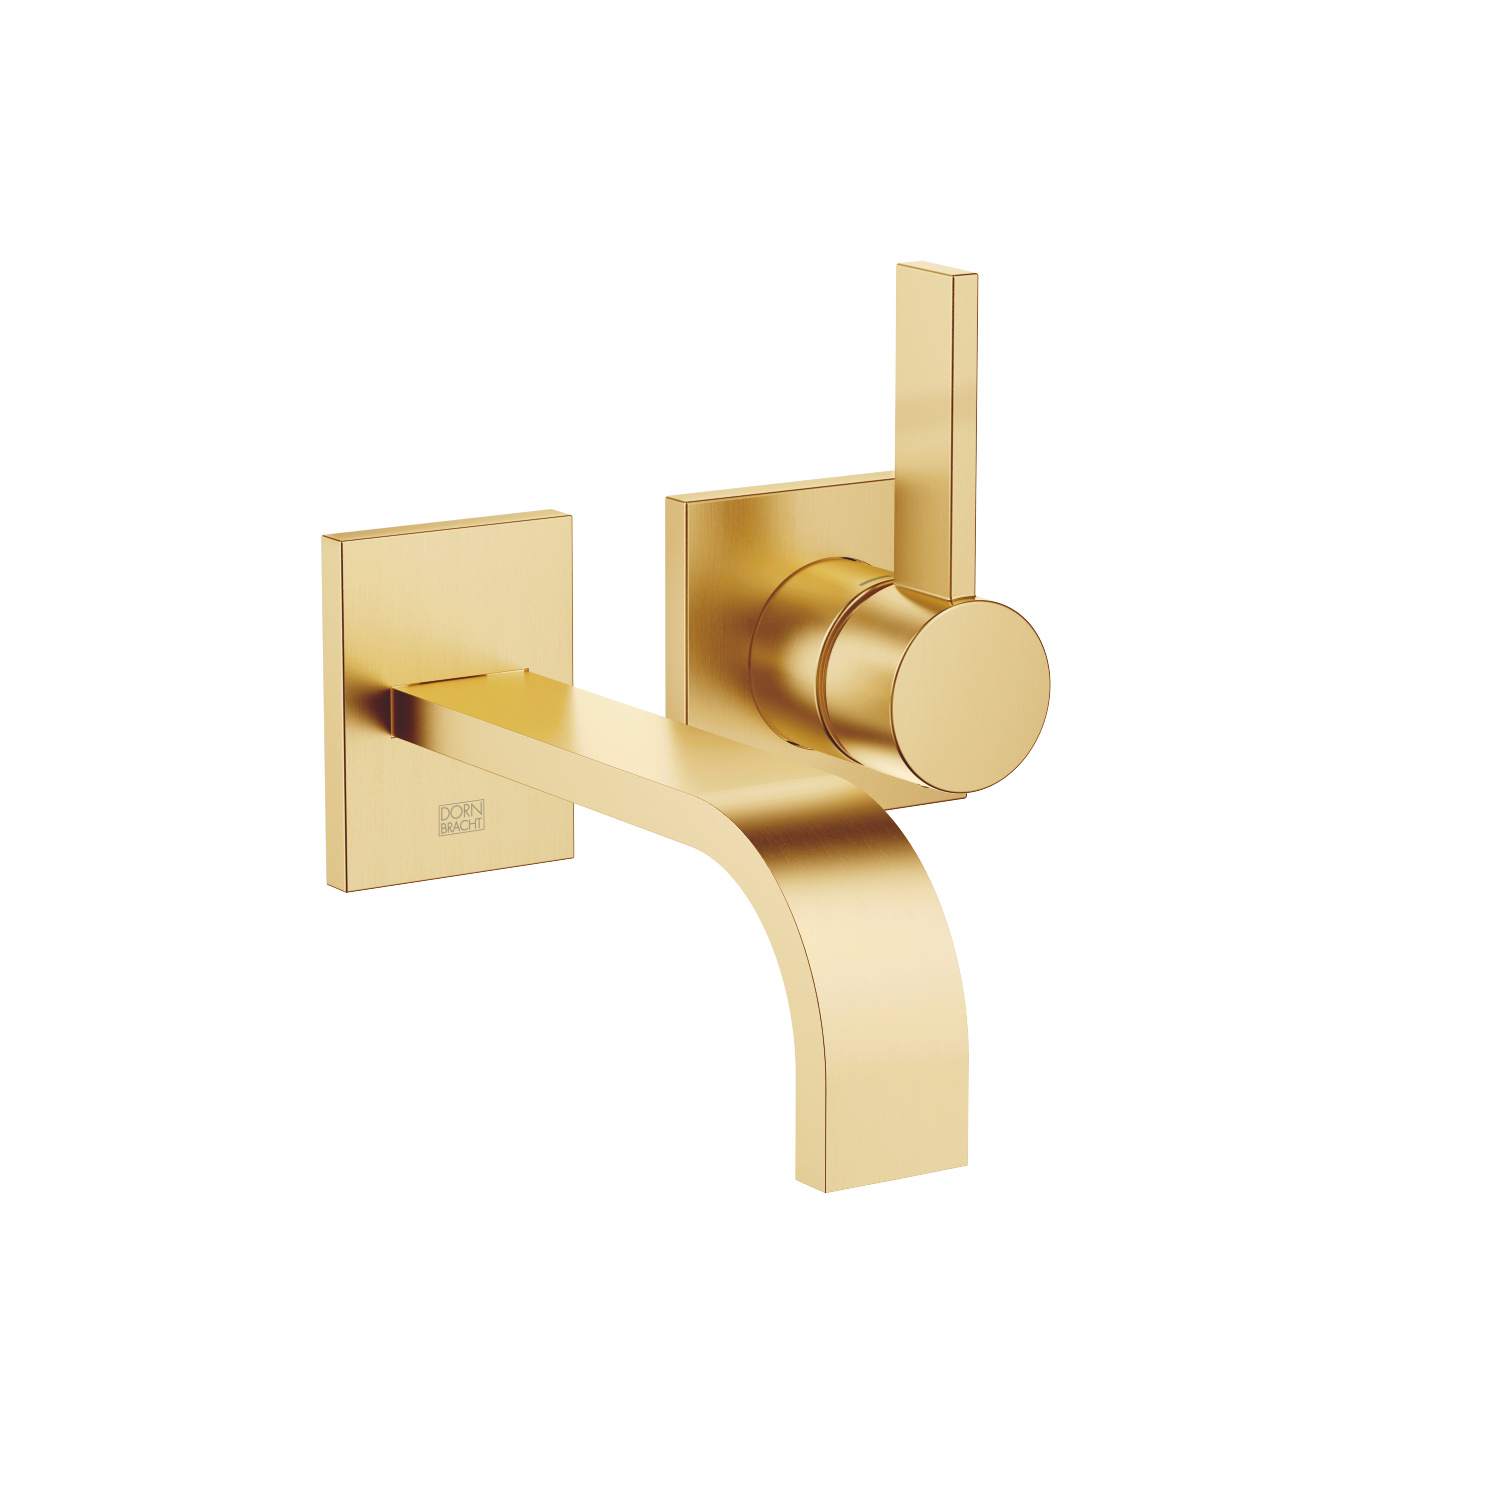 Wall-mounted single-lever basin mixer without pop-up waste - brushed Durabrass